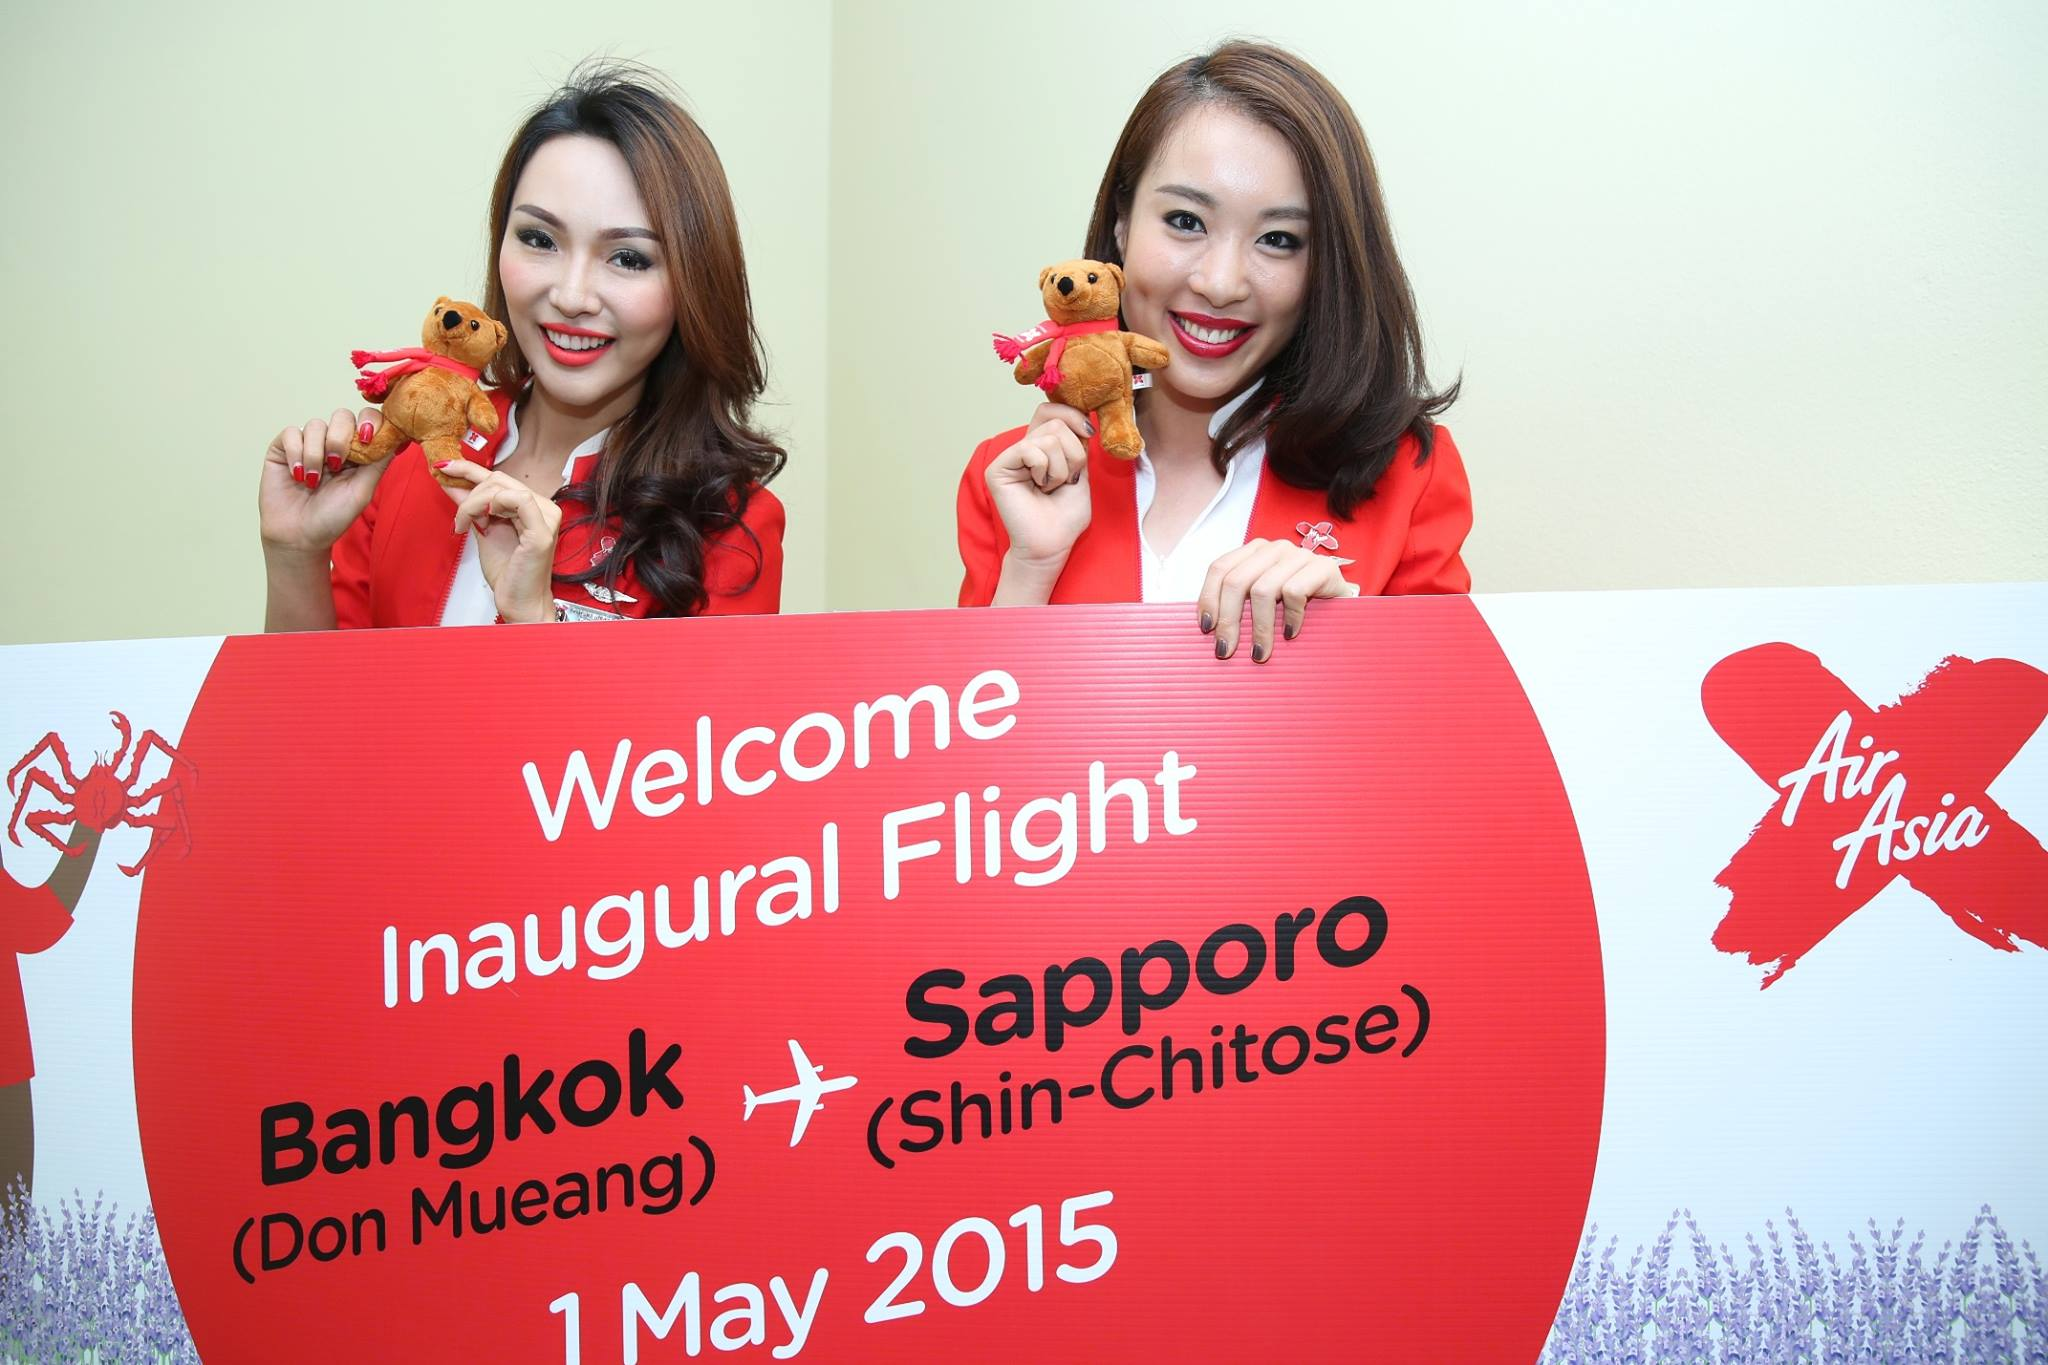 ภาพจาก Facebook Thai AirAsia